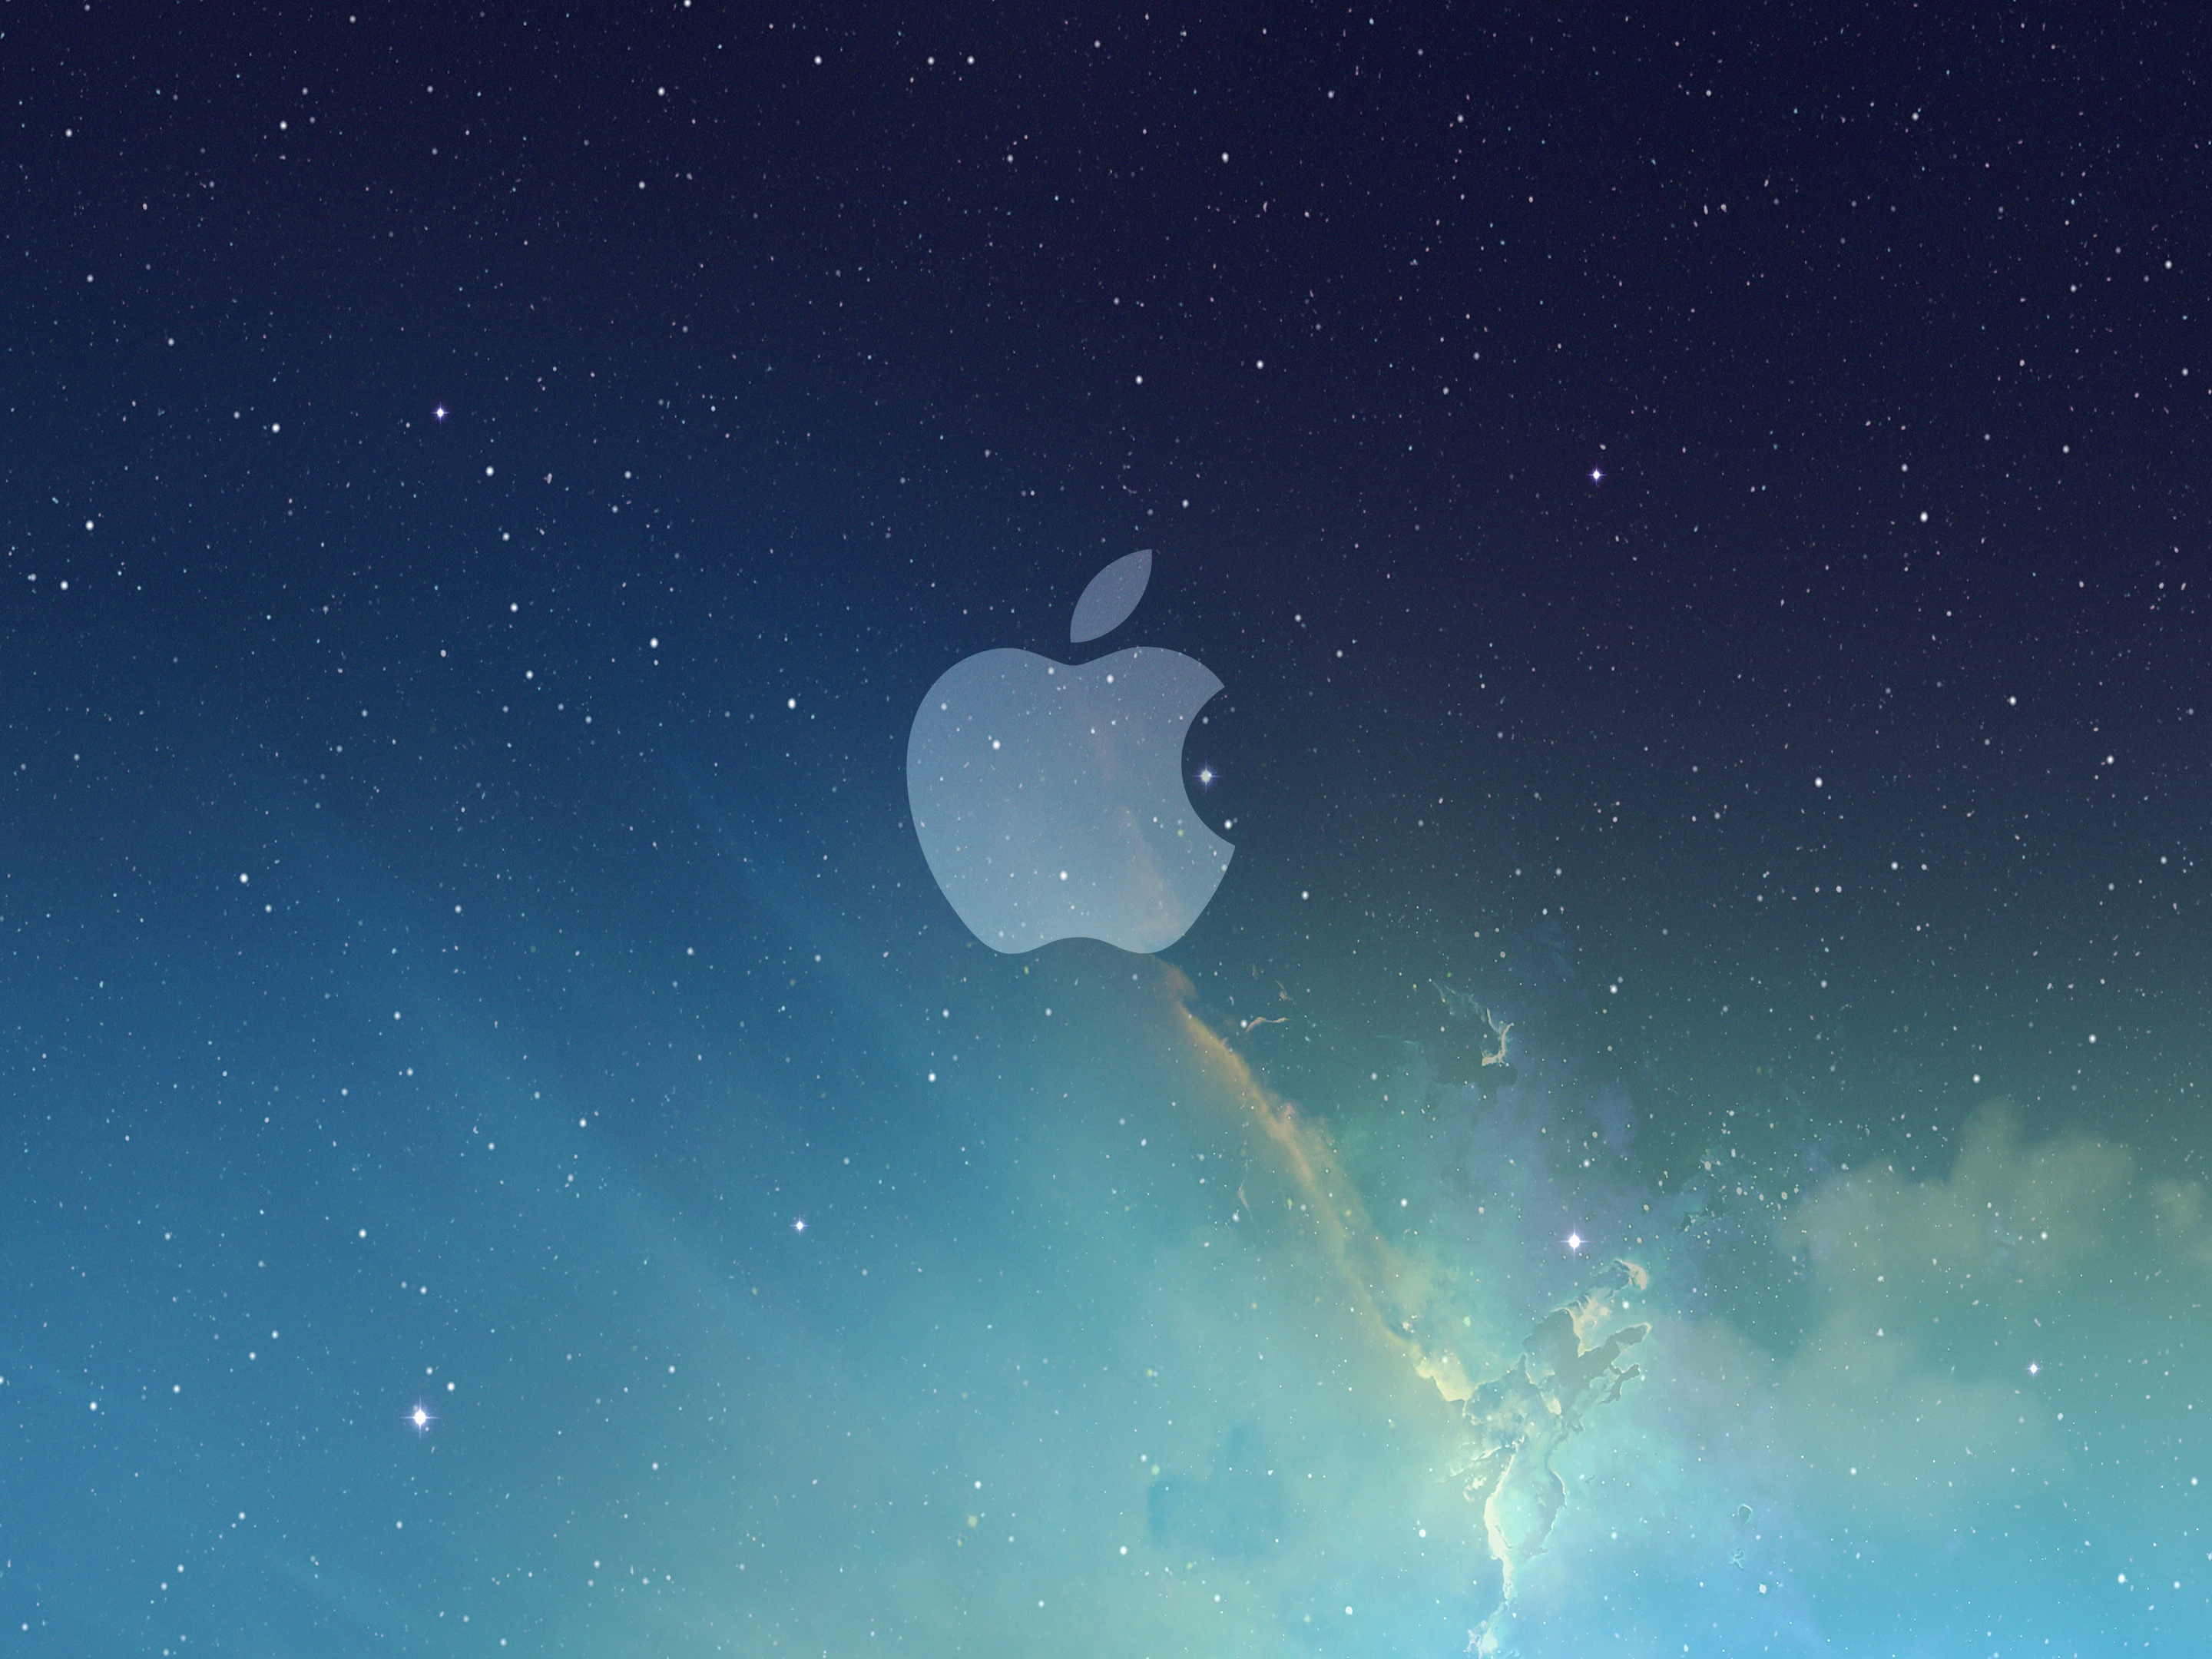 370 Wallpapers Para Iphone: Fondo De Pantalla Semanal: Estrellas Con El Logo De Apple